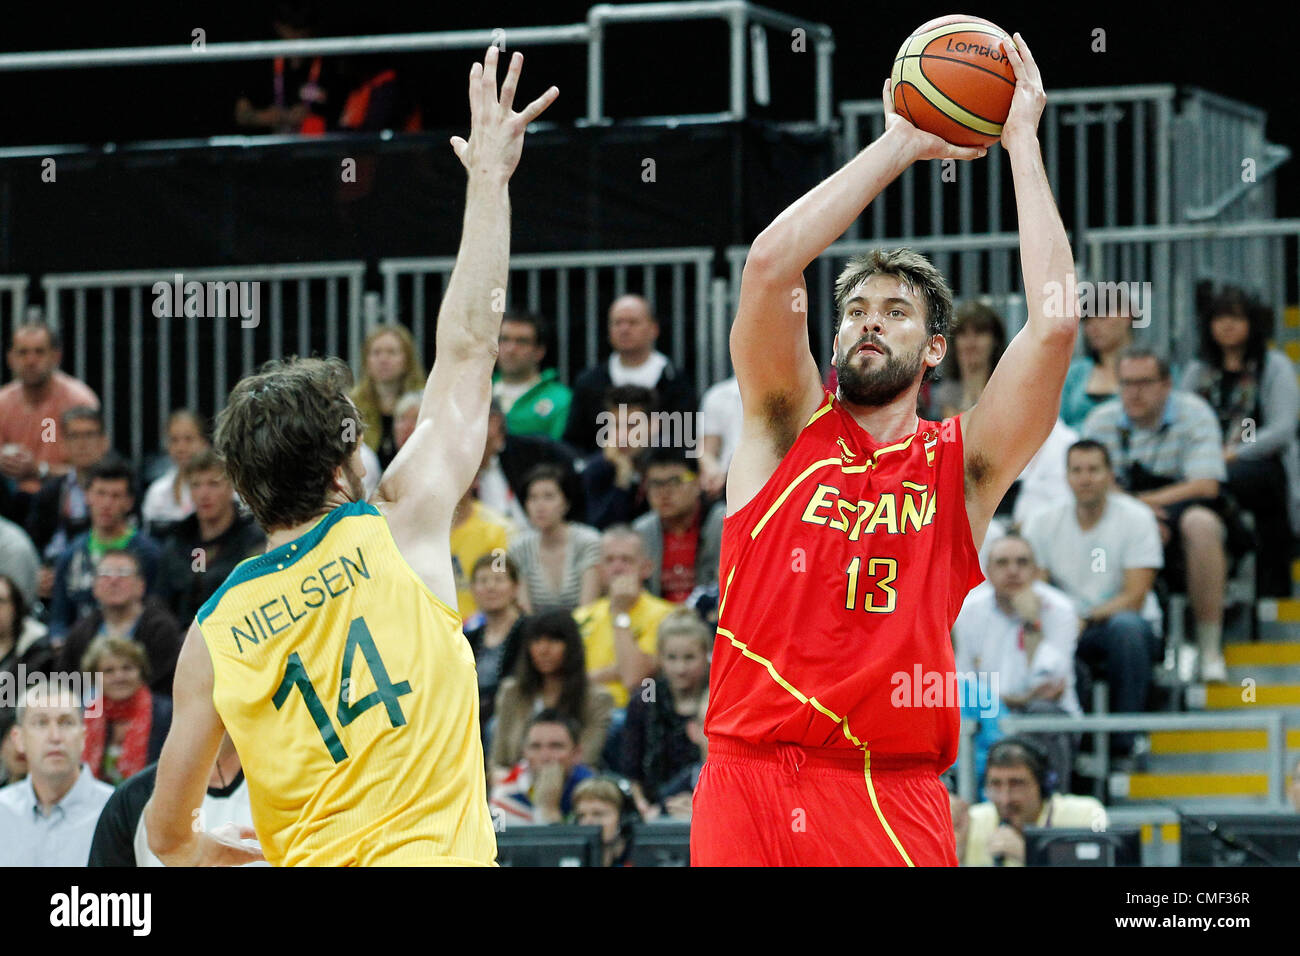 31.07.2012. London, England. Spain Marc Gasol takes a jumpshot over Australia Matt Nielsen during the first half - Stock Image